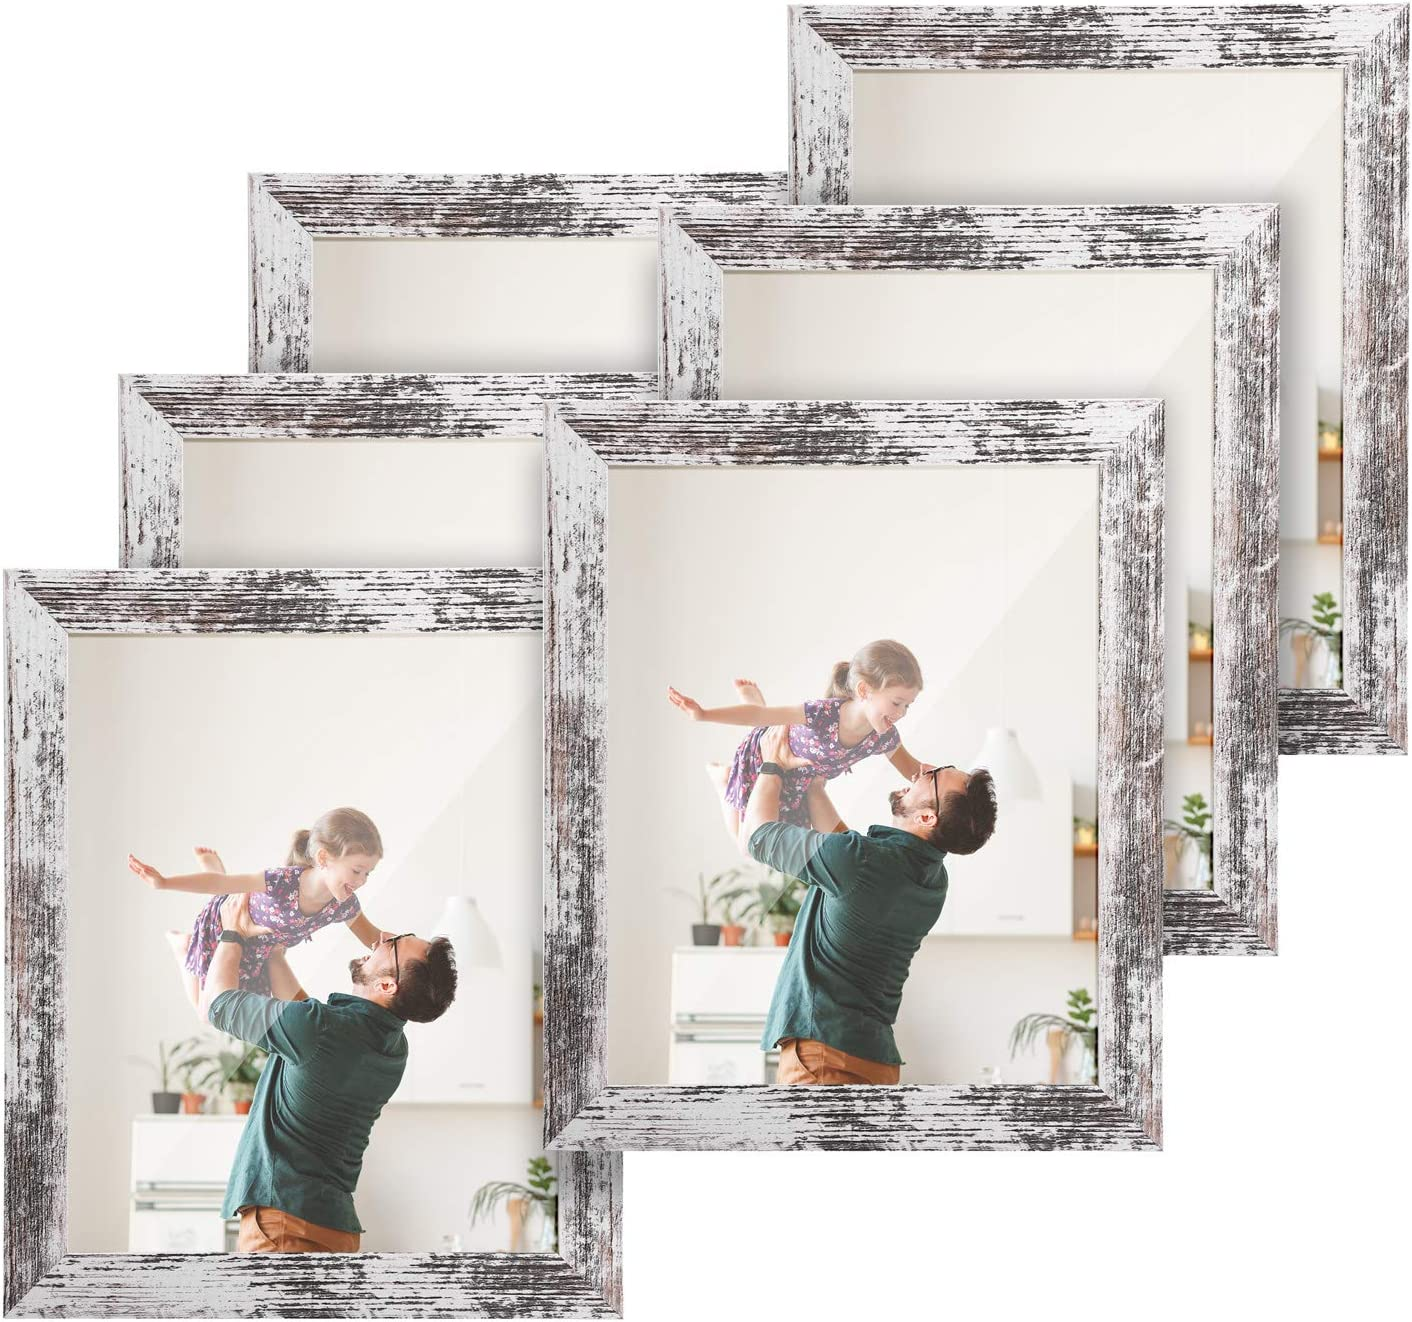 TWING Rustic 8 by 10 Picture Frames Distressed White Wood Pattern High Definition Plexiglass Photos Frame for Table Top and Wall Display 6 Pack